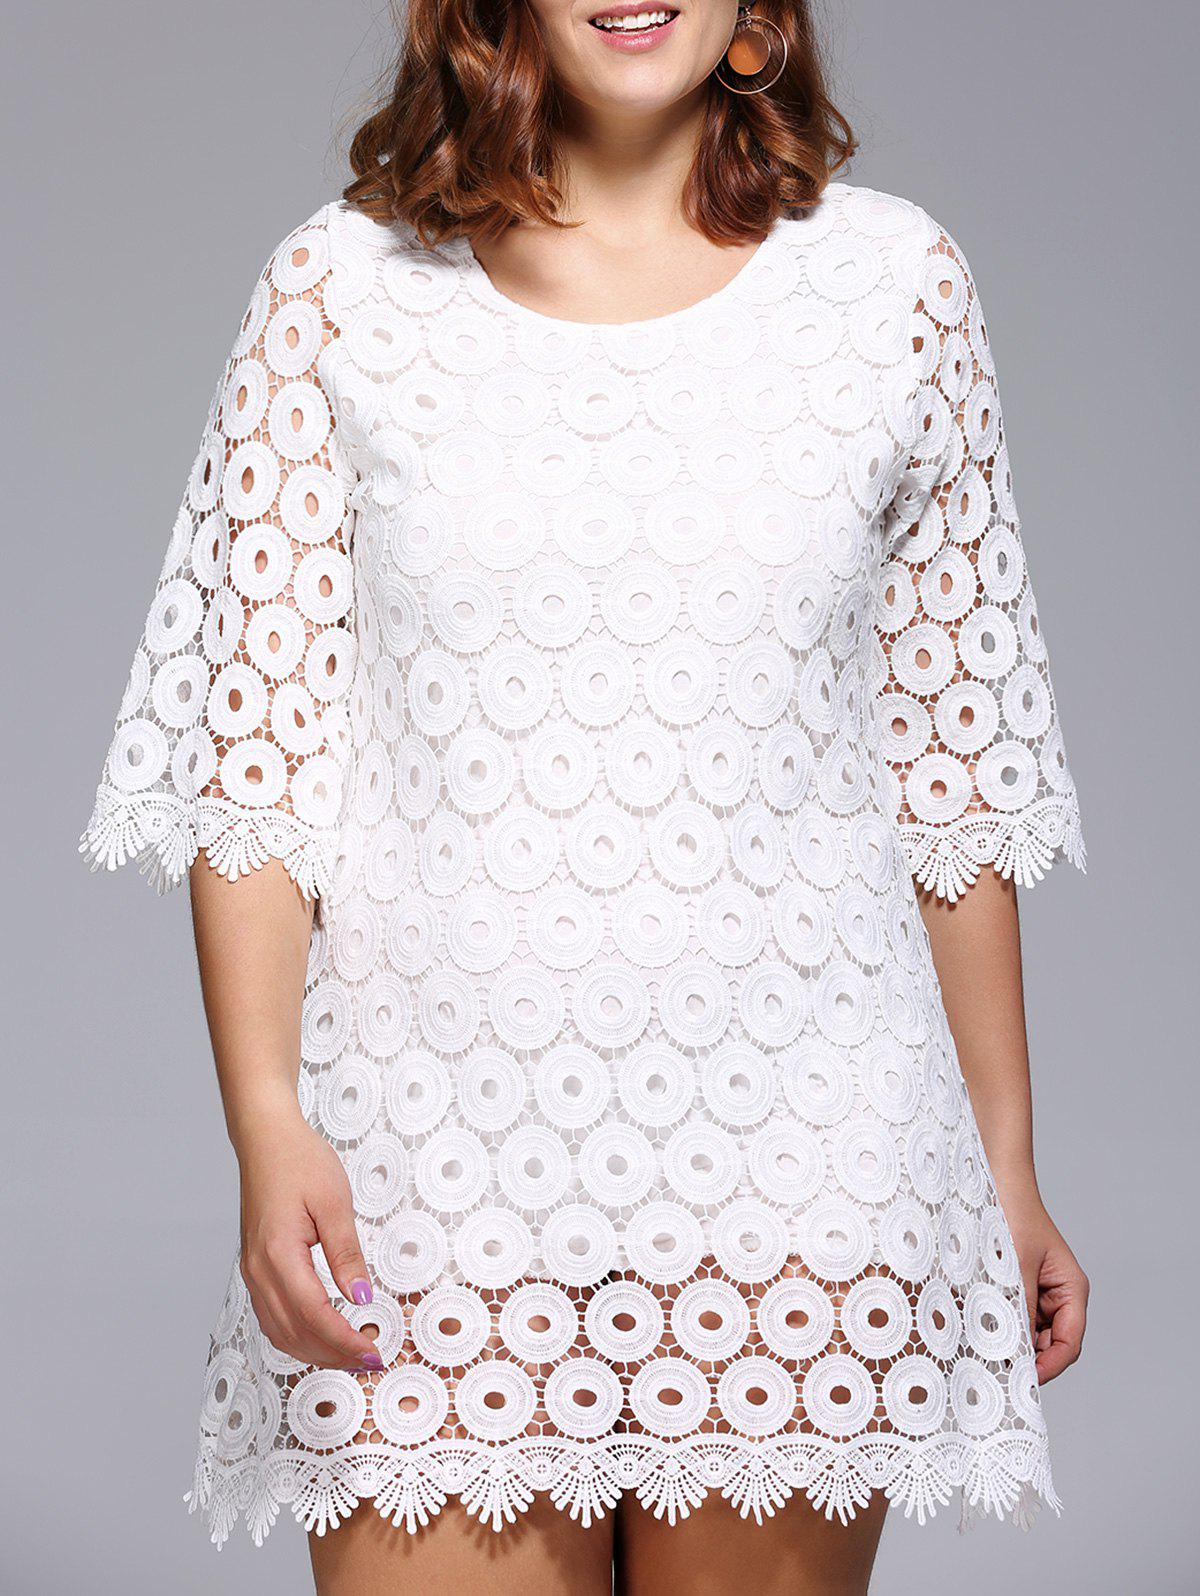 Stylish Women's Plus Size Circle Pattern Lace Overlay Dress - WHITE ONE SIZE(FIT SIZE L TO 3XL)